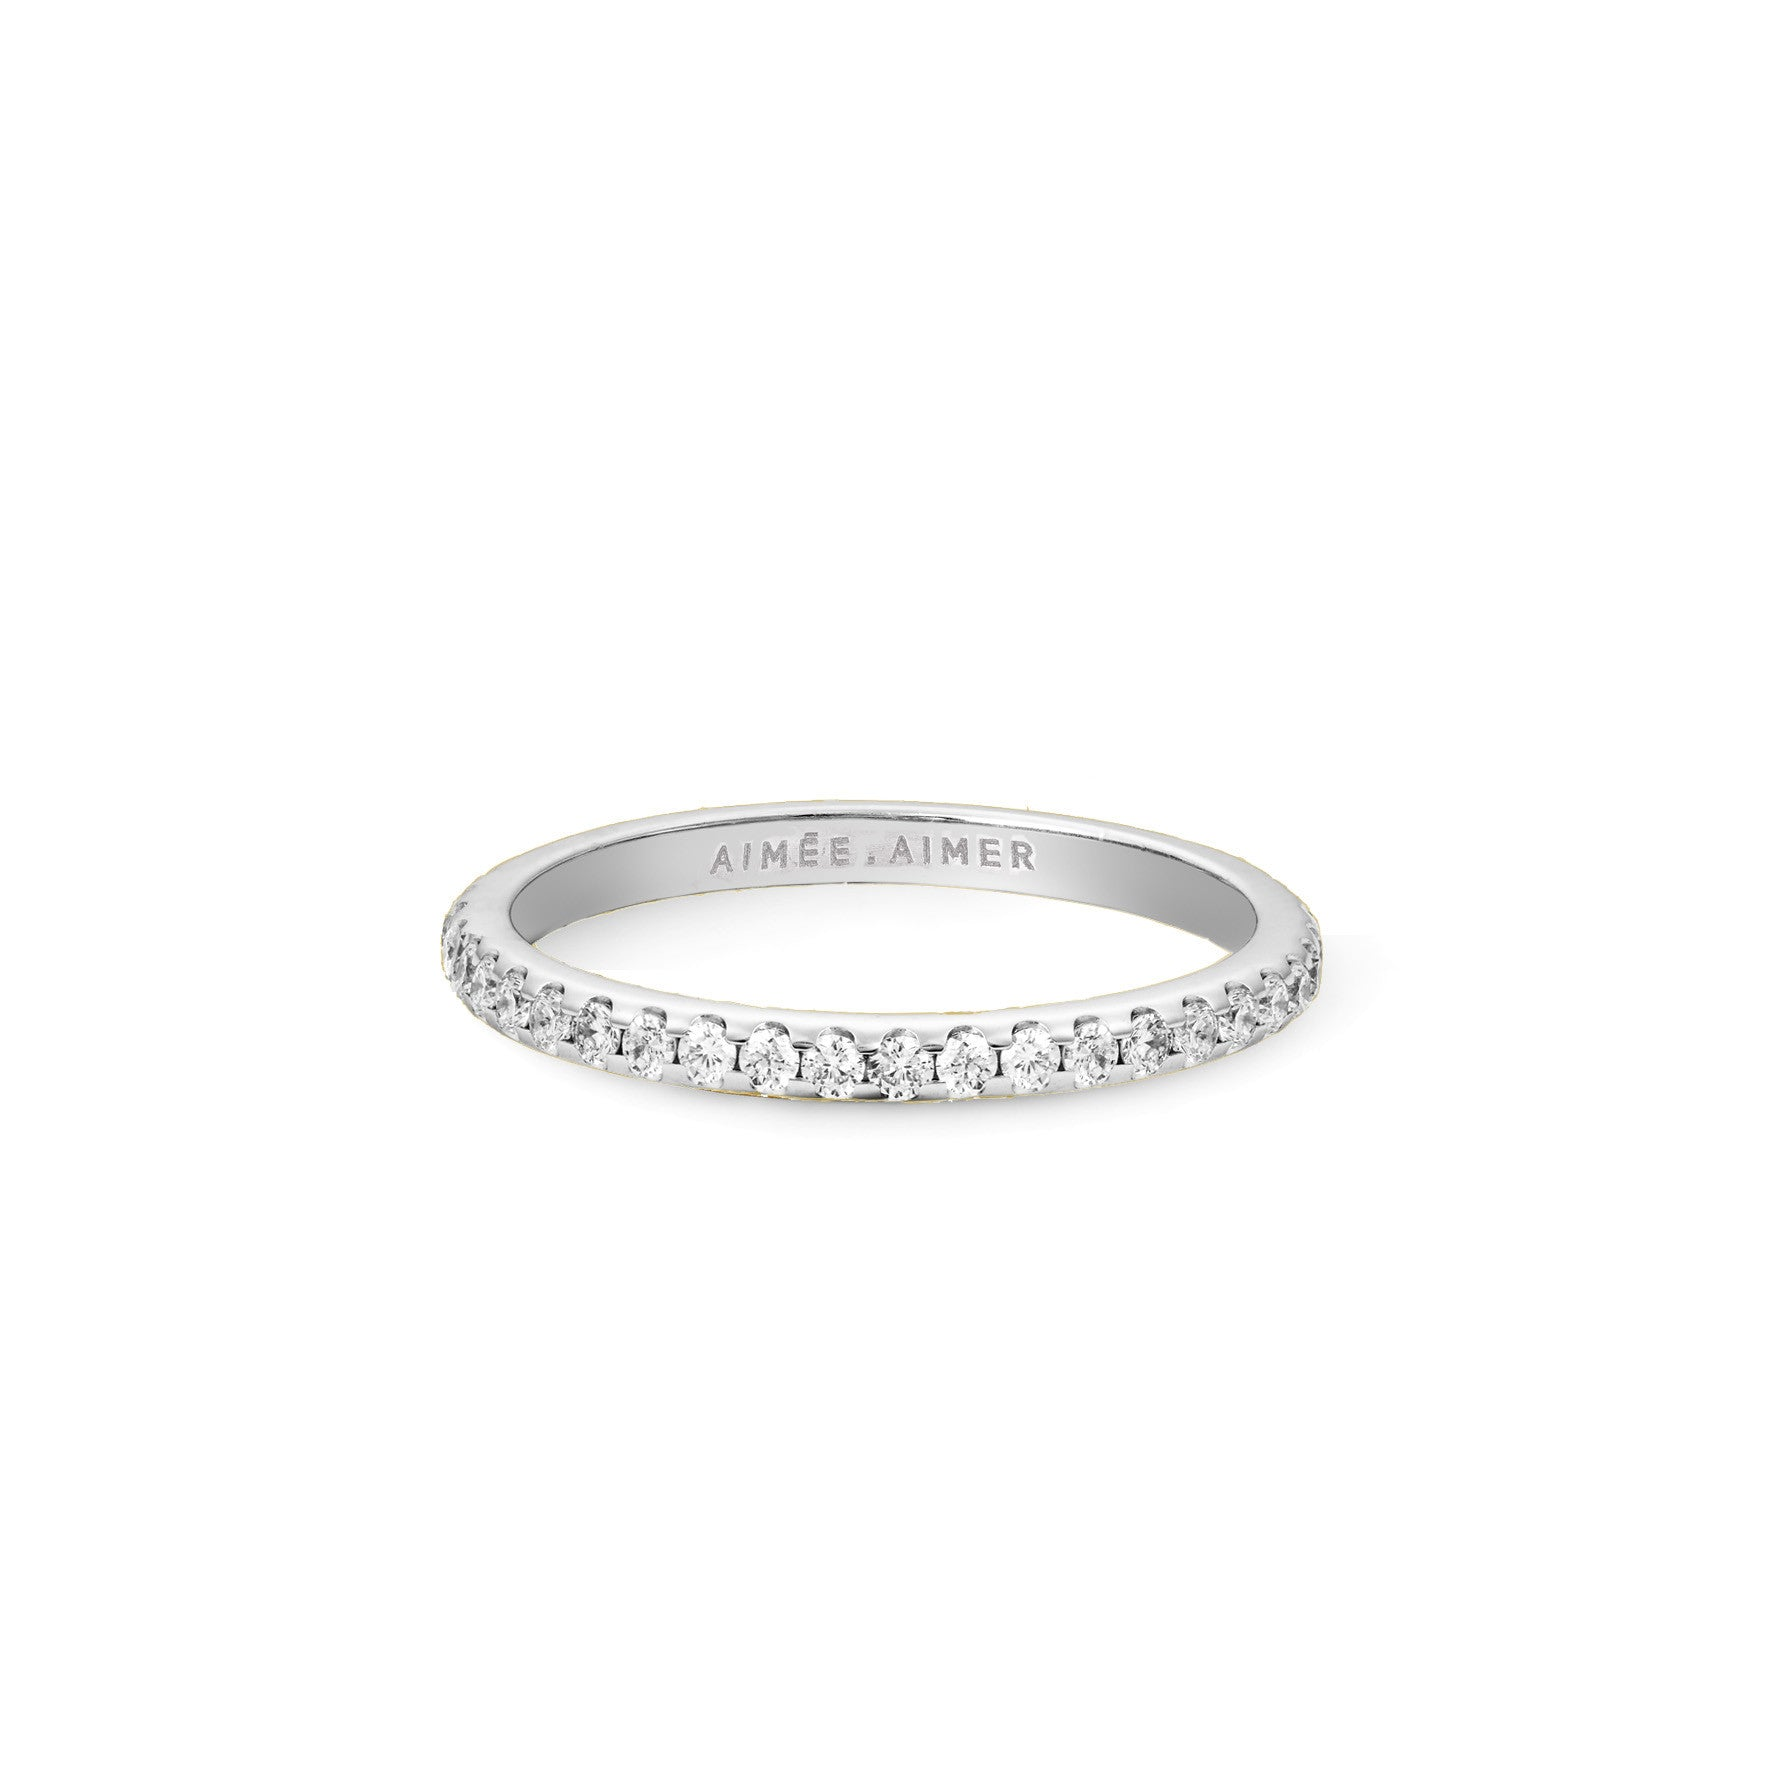 Bague Infini Or blanc et Diamants